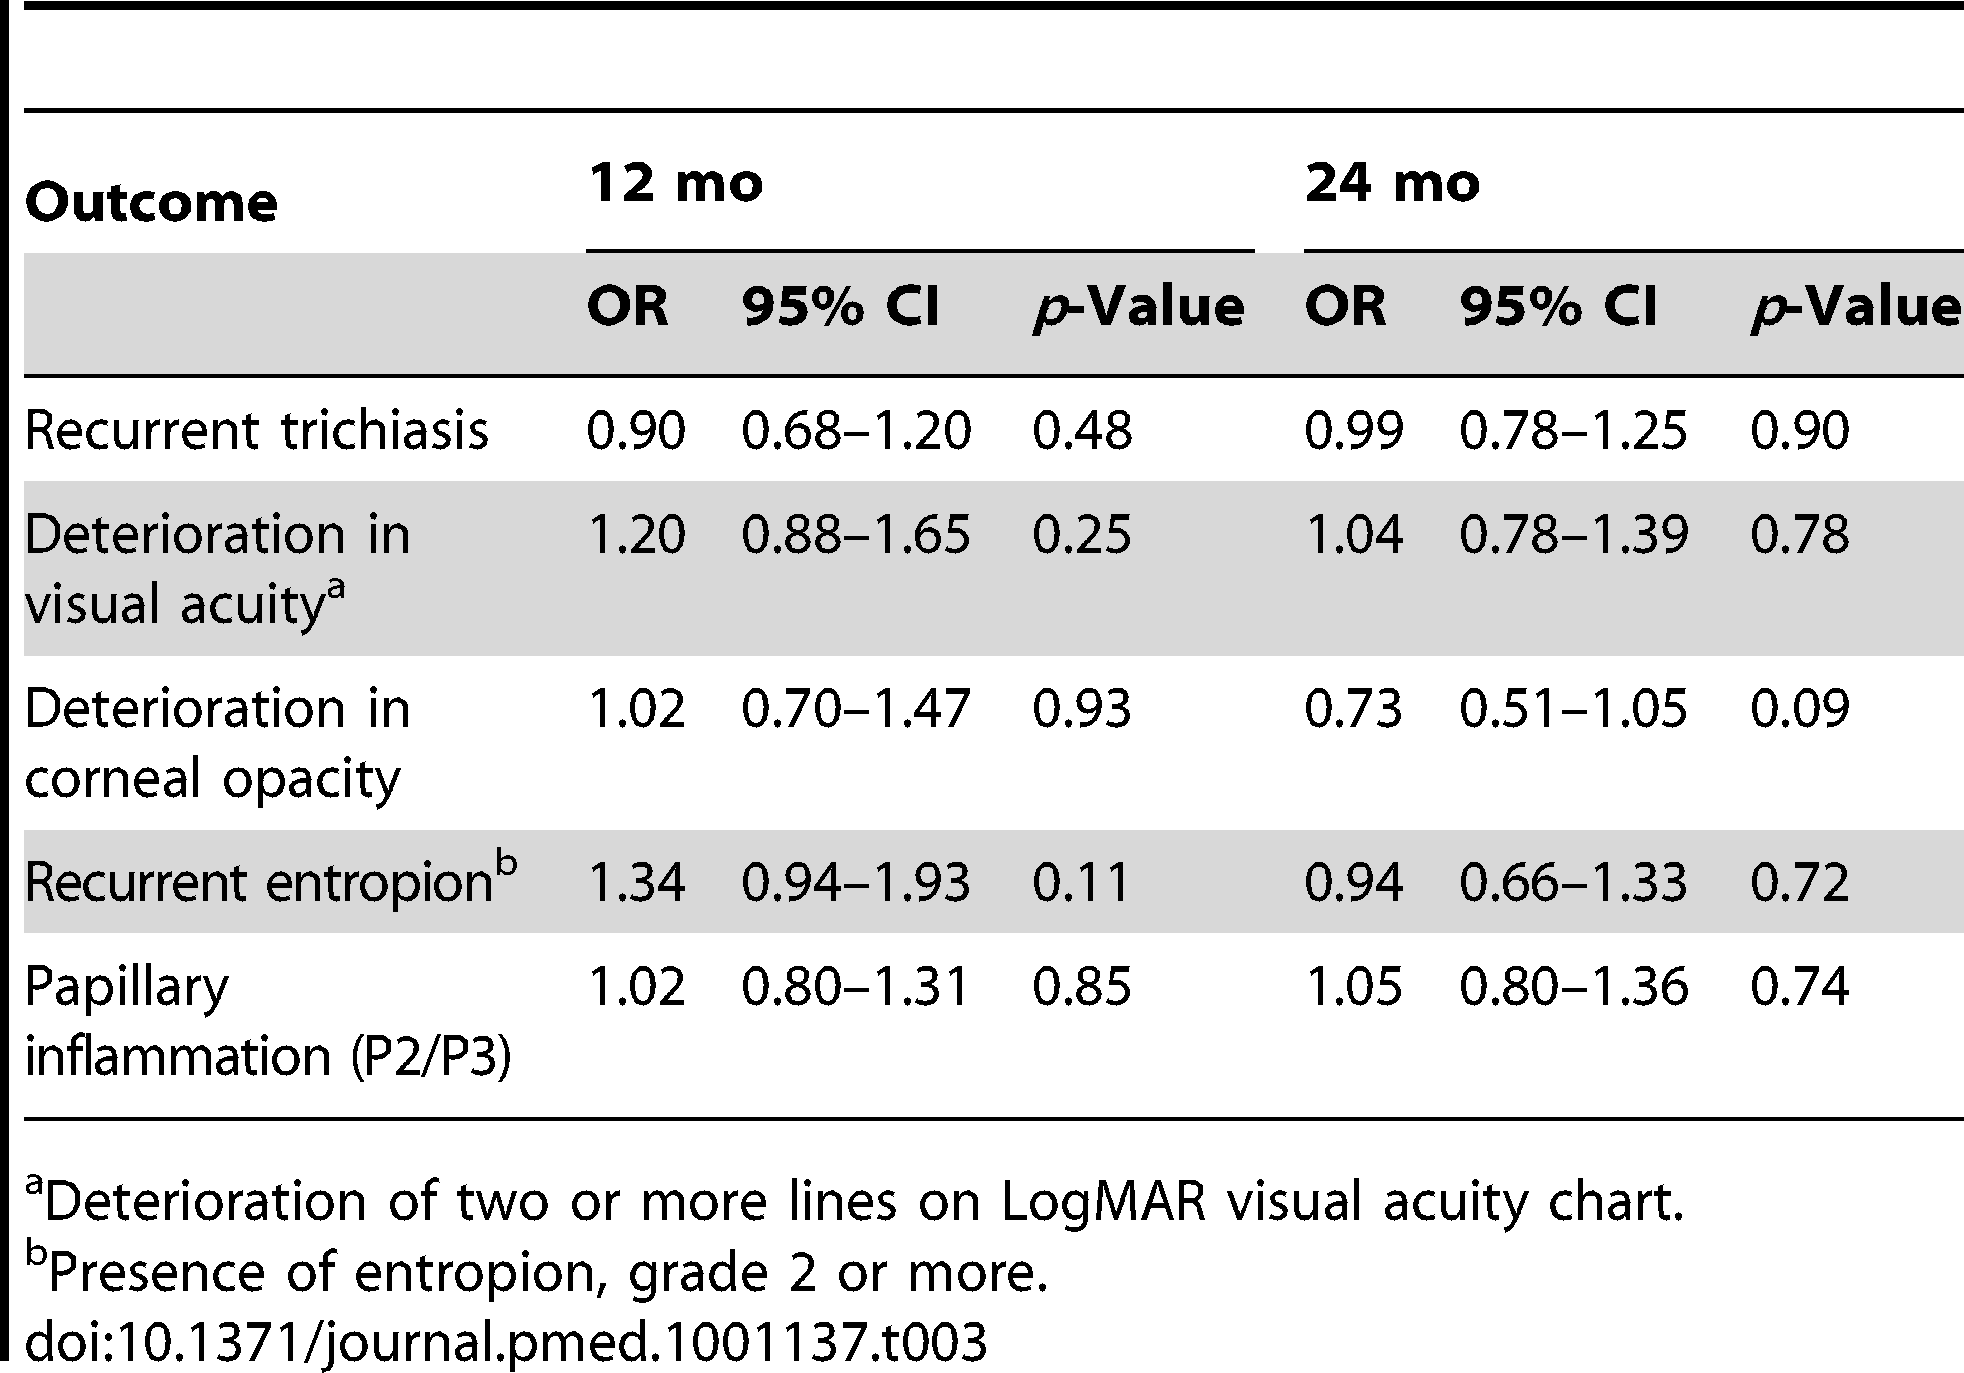 Univariate associations between outcome measures and study arm (polyglactin-910 sutures compared to silk sutures).